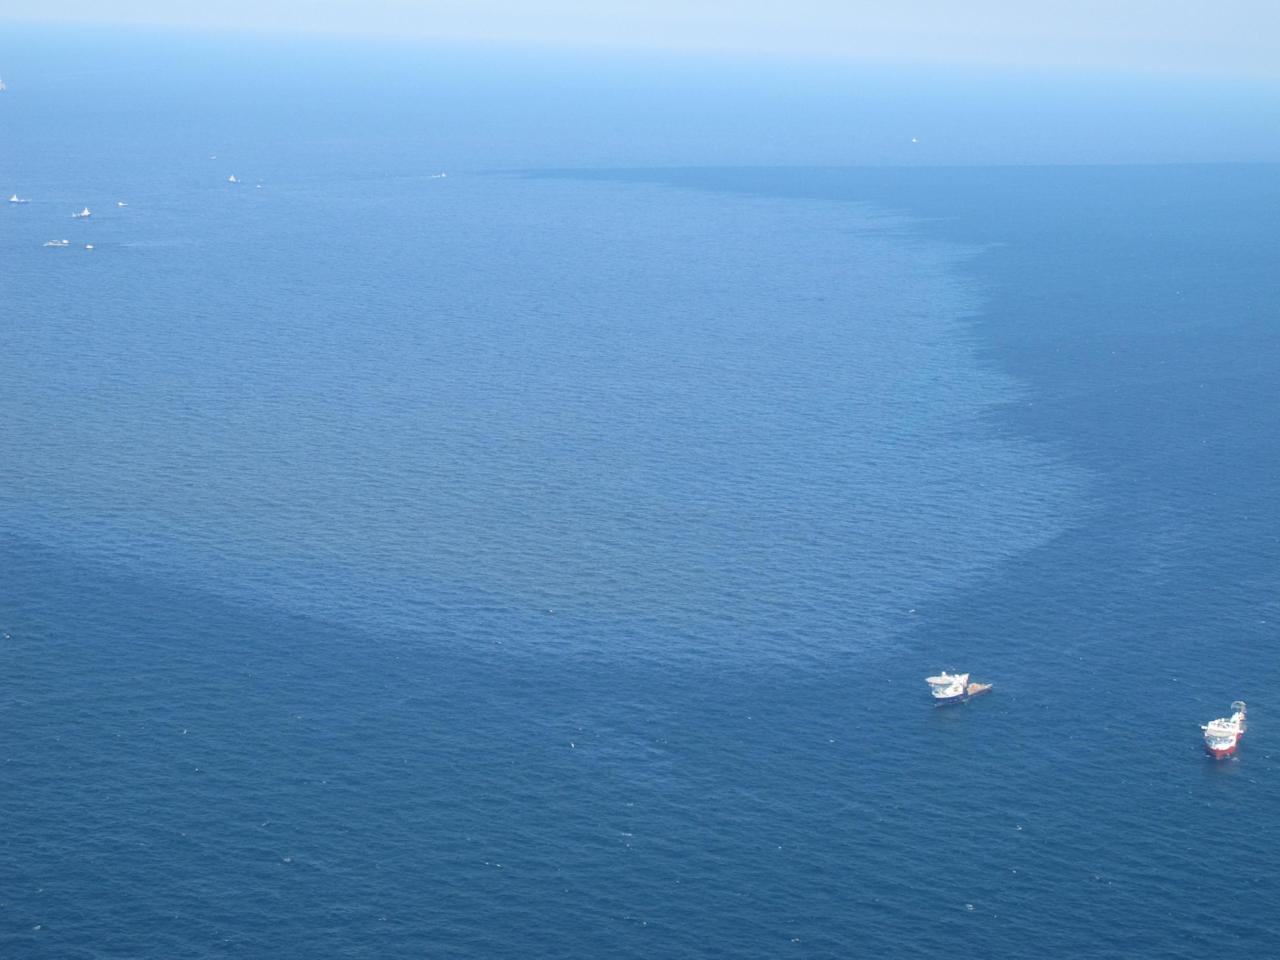 FILE - Two ships float near in a massive oil slick spreading in the Gulf of Mexico after the Deepwater Horizon drilling rig exploded off the coast of Louisiana. Florida Gov. Charlie Crist flew above the plume on in this April 27, 2010 file photo. BP agreed late Friday March 2, 2012 to settle lawsuits brought by more than 100,000 fishermen who lost work, cleanup workers who got sick and others who claimed harm from the oil giant's 2010 Gulf of Mexico disaster, the worst offshore oil spill in the nation's history. The momentous settlement will have no cap to compensate the plaintiffs, though BP PLC estimated it would have to pay out about $7.8 billion, making it one of the largest class-action settlements ever. After the Exxon Valdez disaster in 1989, the company ultimately settled with the U.S. government for $1 billion, which would be about $1.8 billion today. (AP Photo/Brendan Farrington, File)